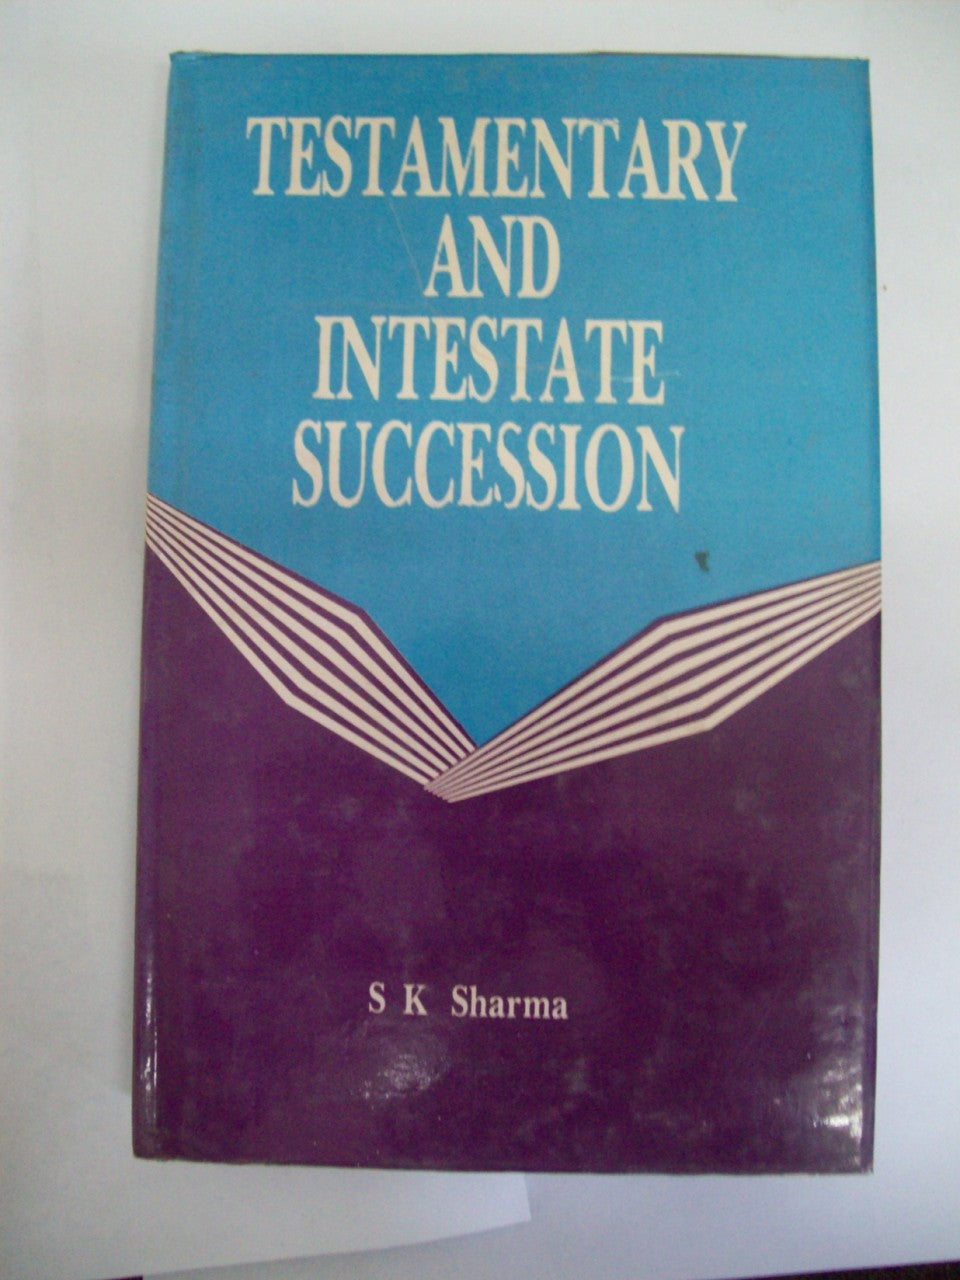 Testamentary And Intestate Succession